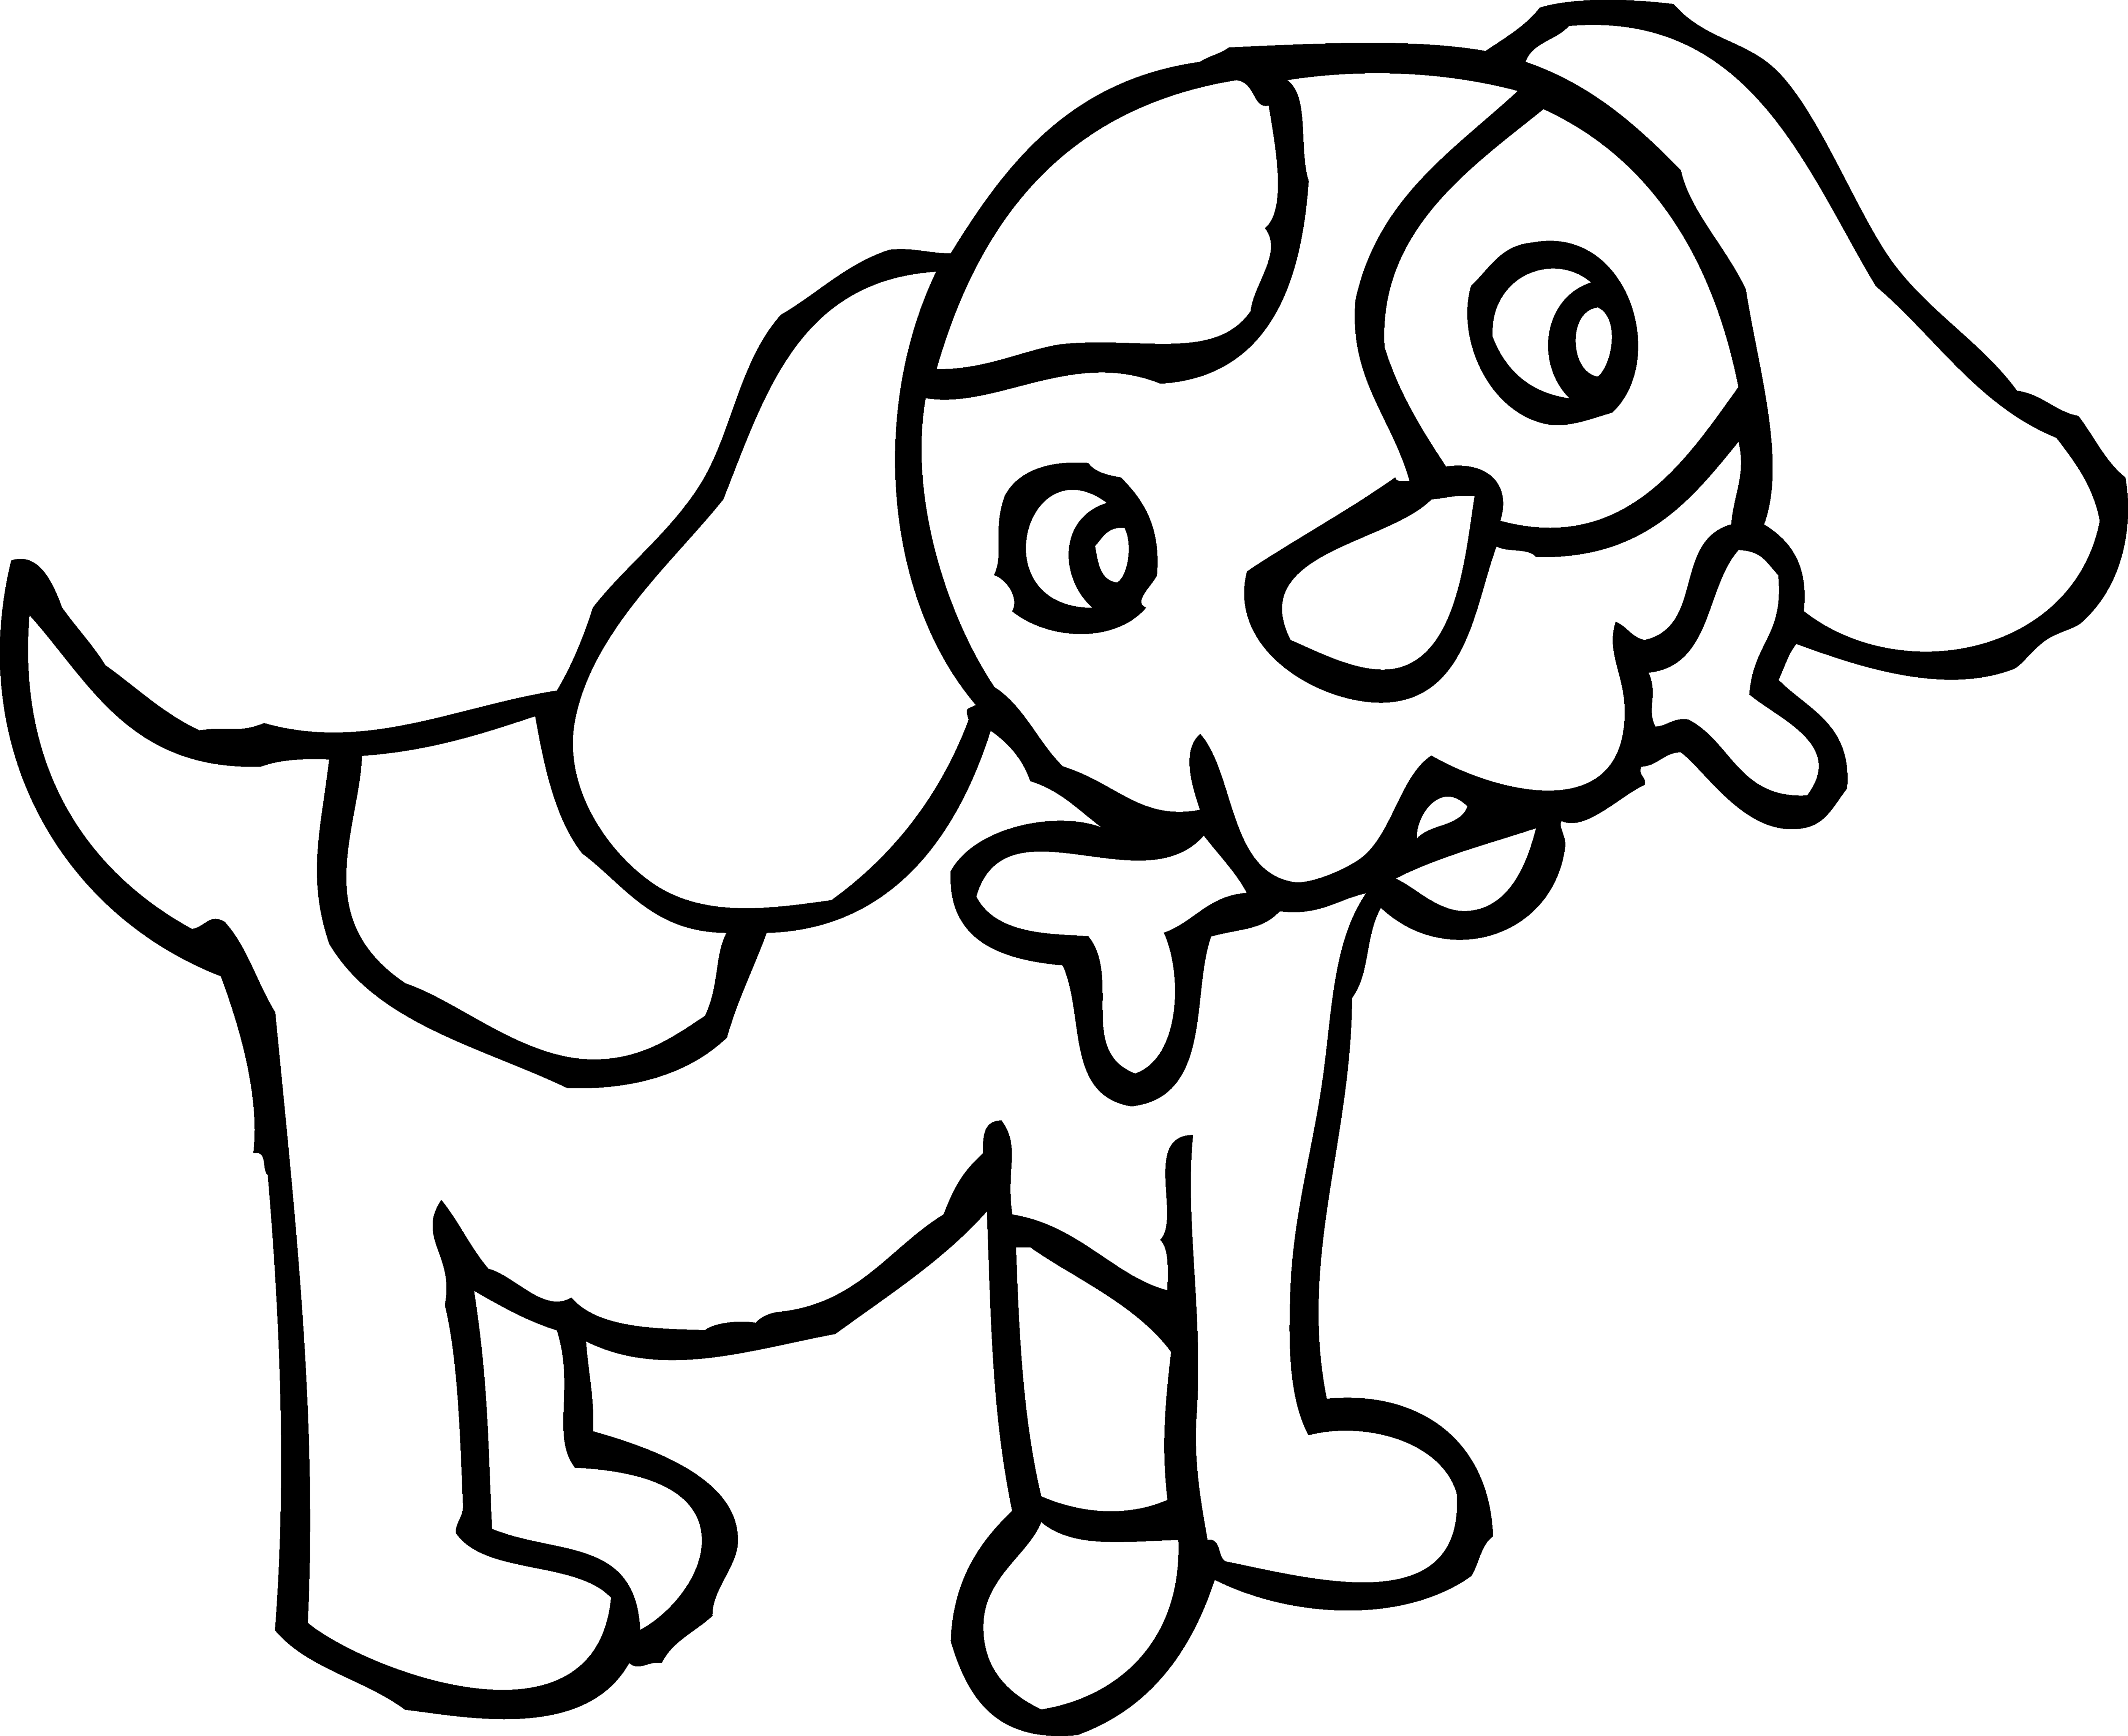 Pet clipart simple. Dog drawing at getdrawings